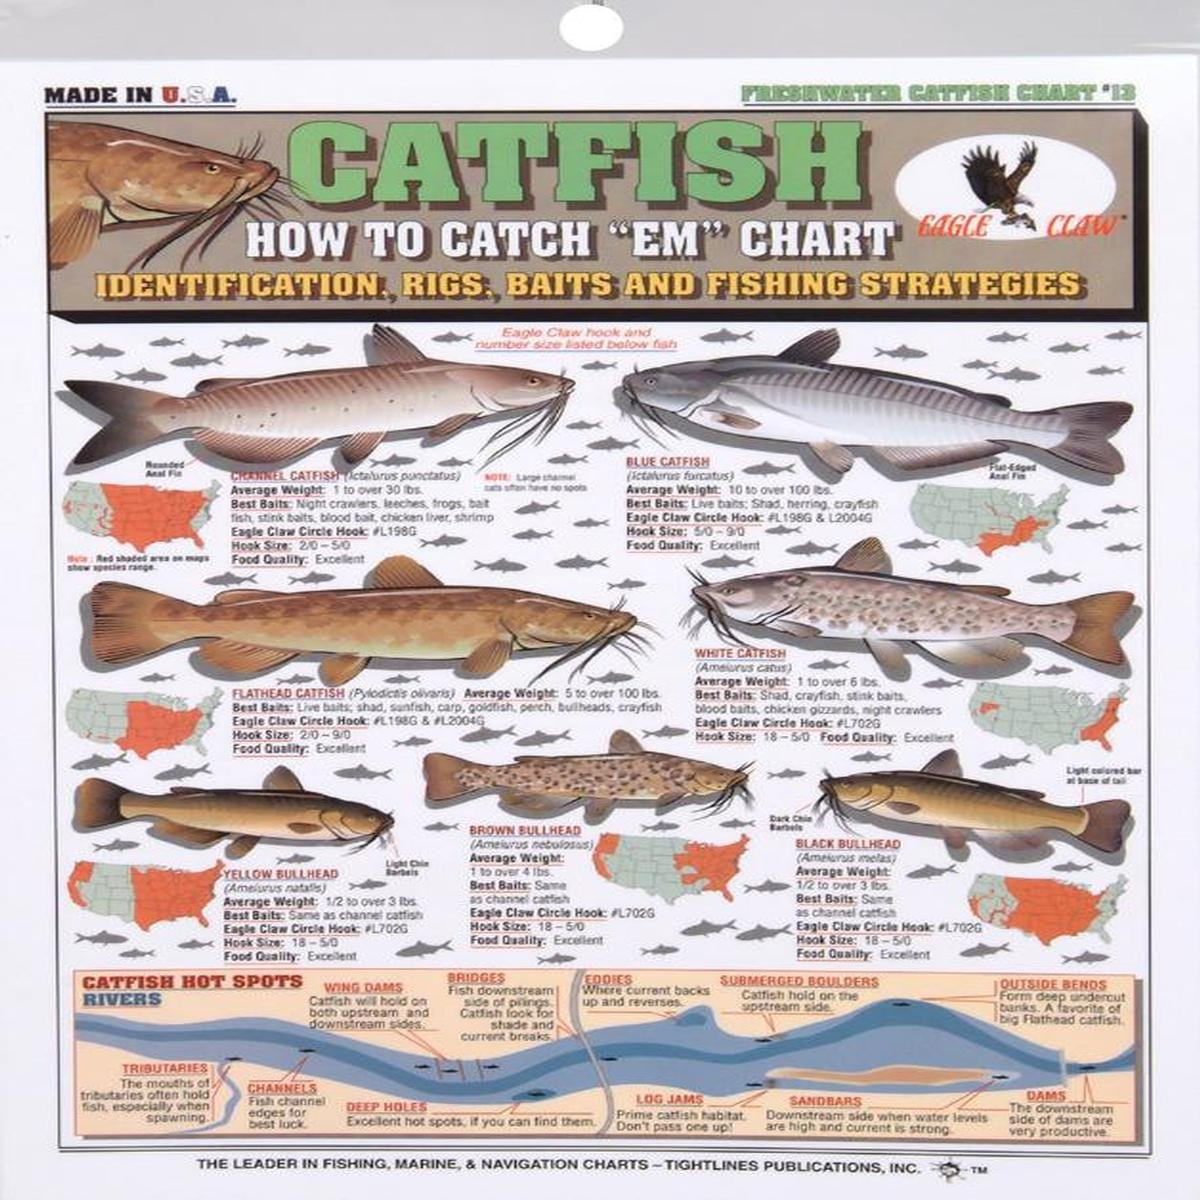 Amazon.com : Tightline Publications Catfish How To Catch # 13 ...